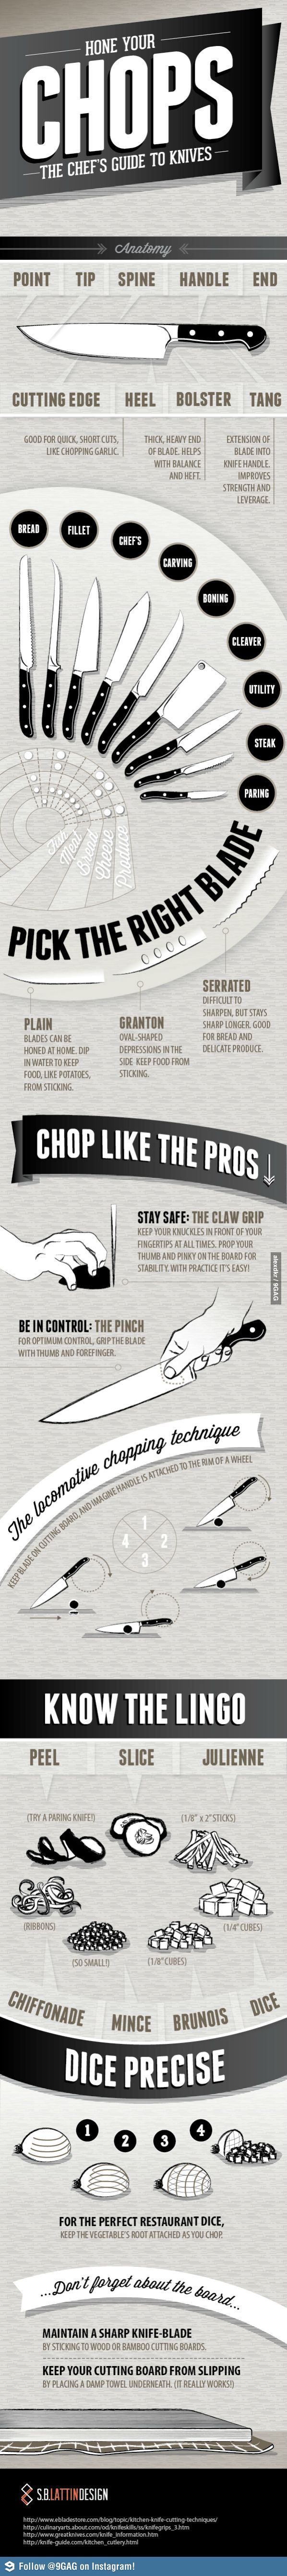 Knife Guide - for those of you who don't watch alton brown or julia child and need a knife lesson ... ;-)